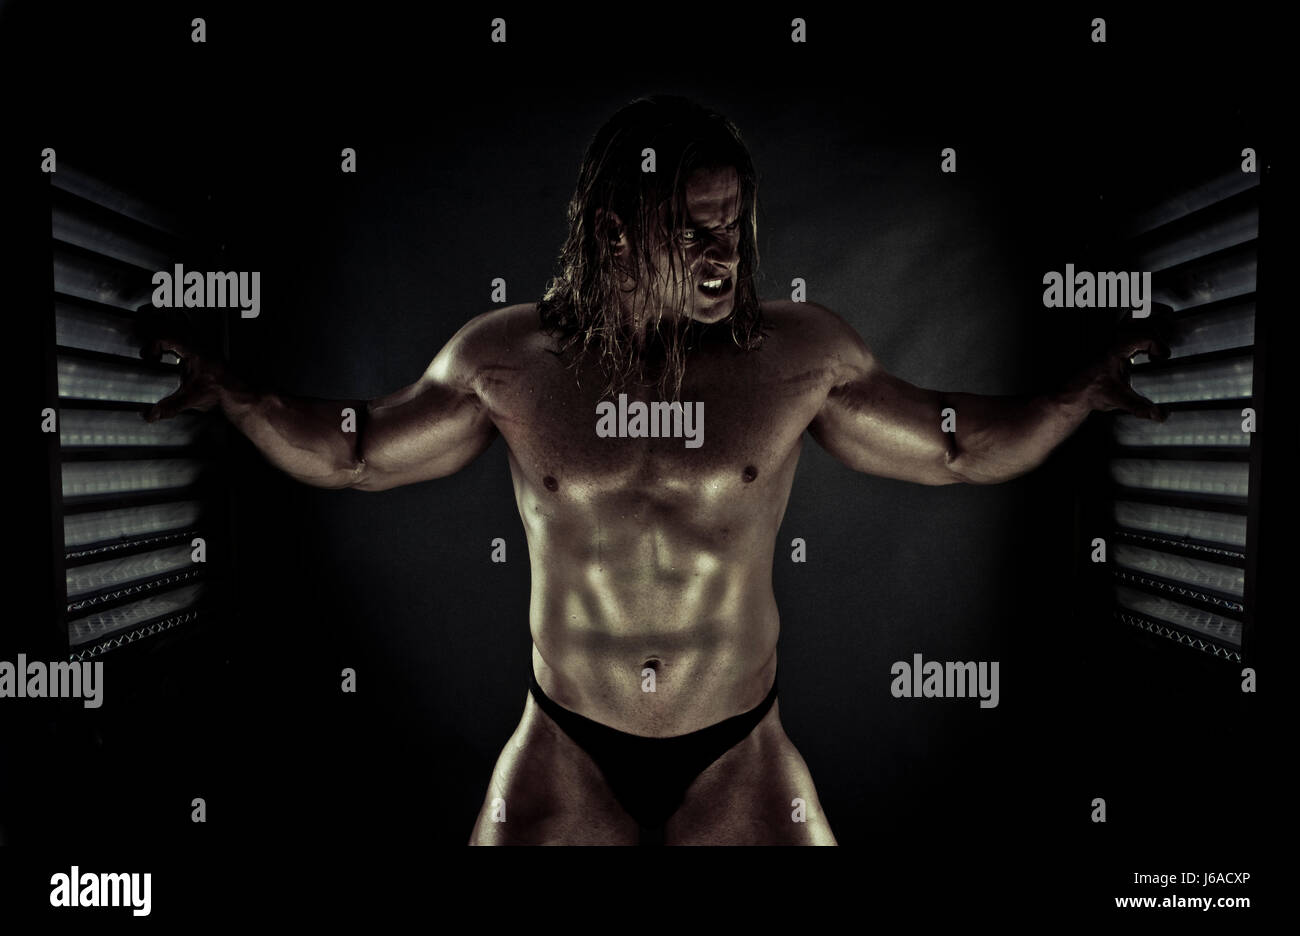 adult bad peccant wickedly evil bodybuilding raving furious angry irately - Stock Image